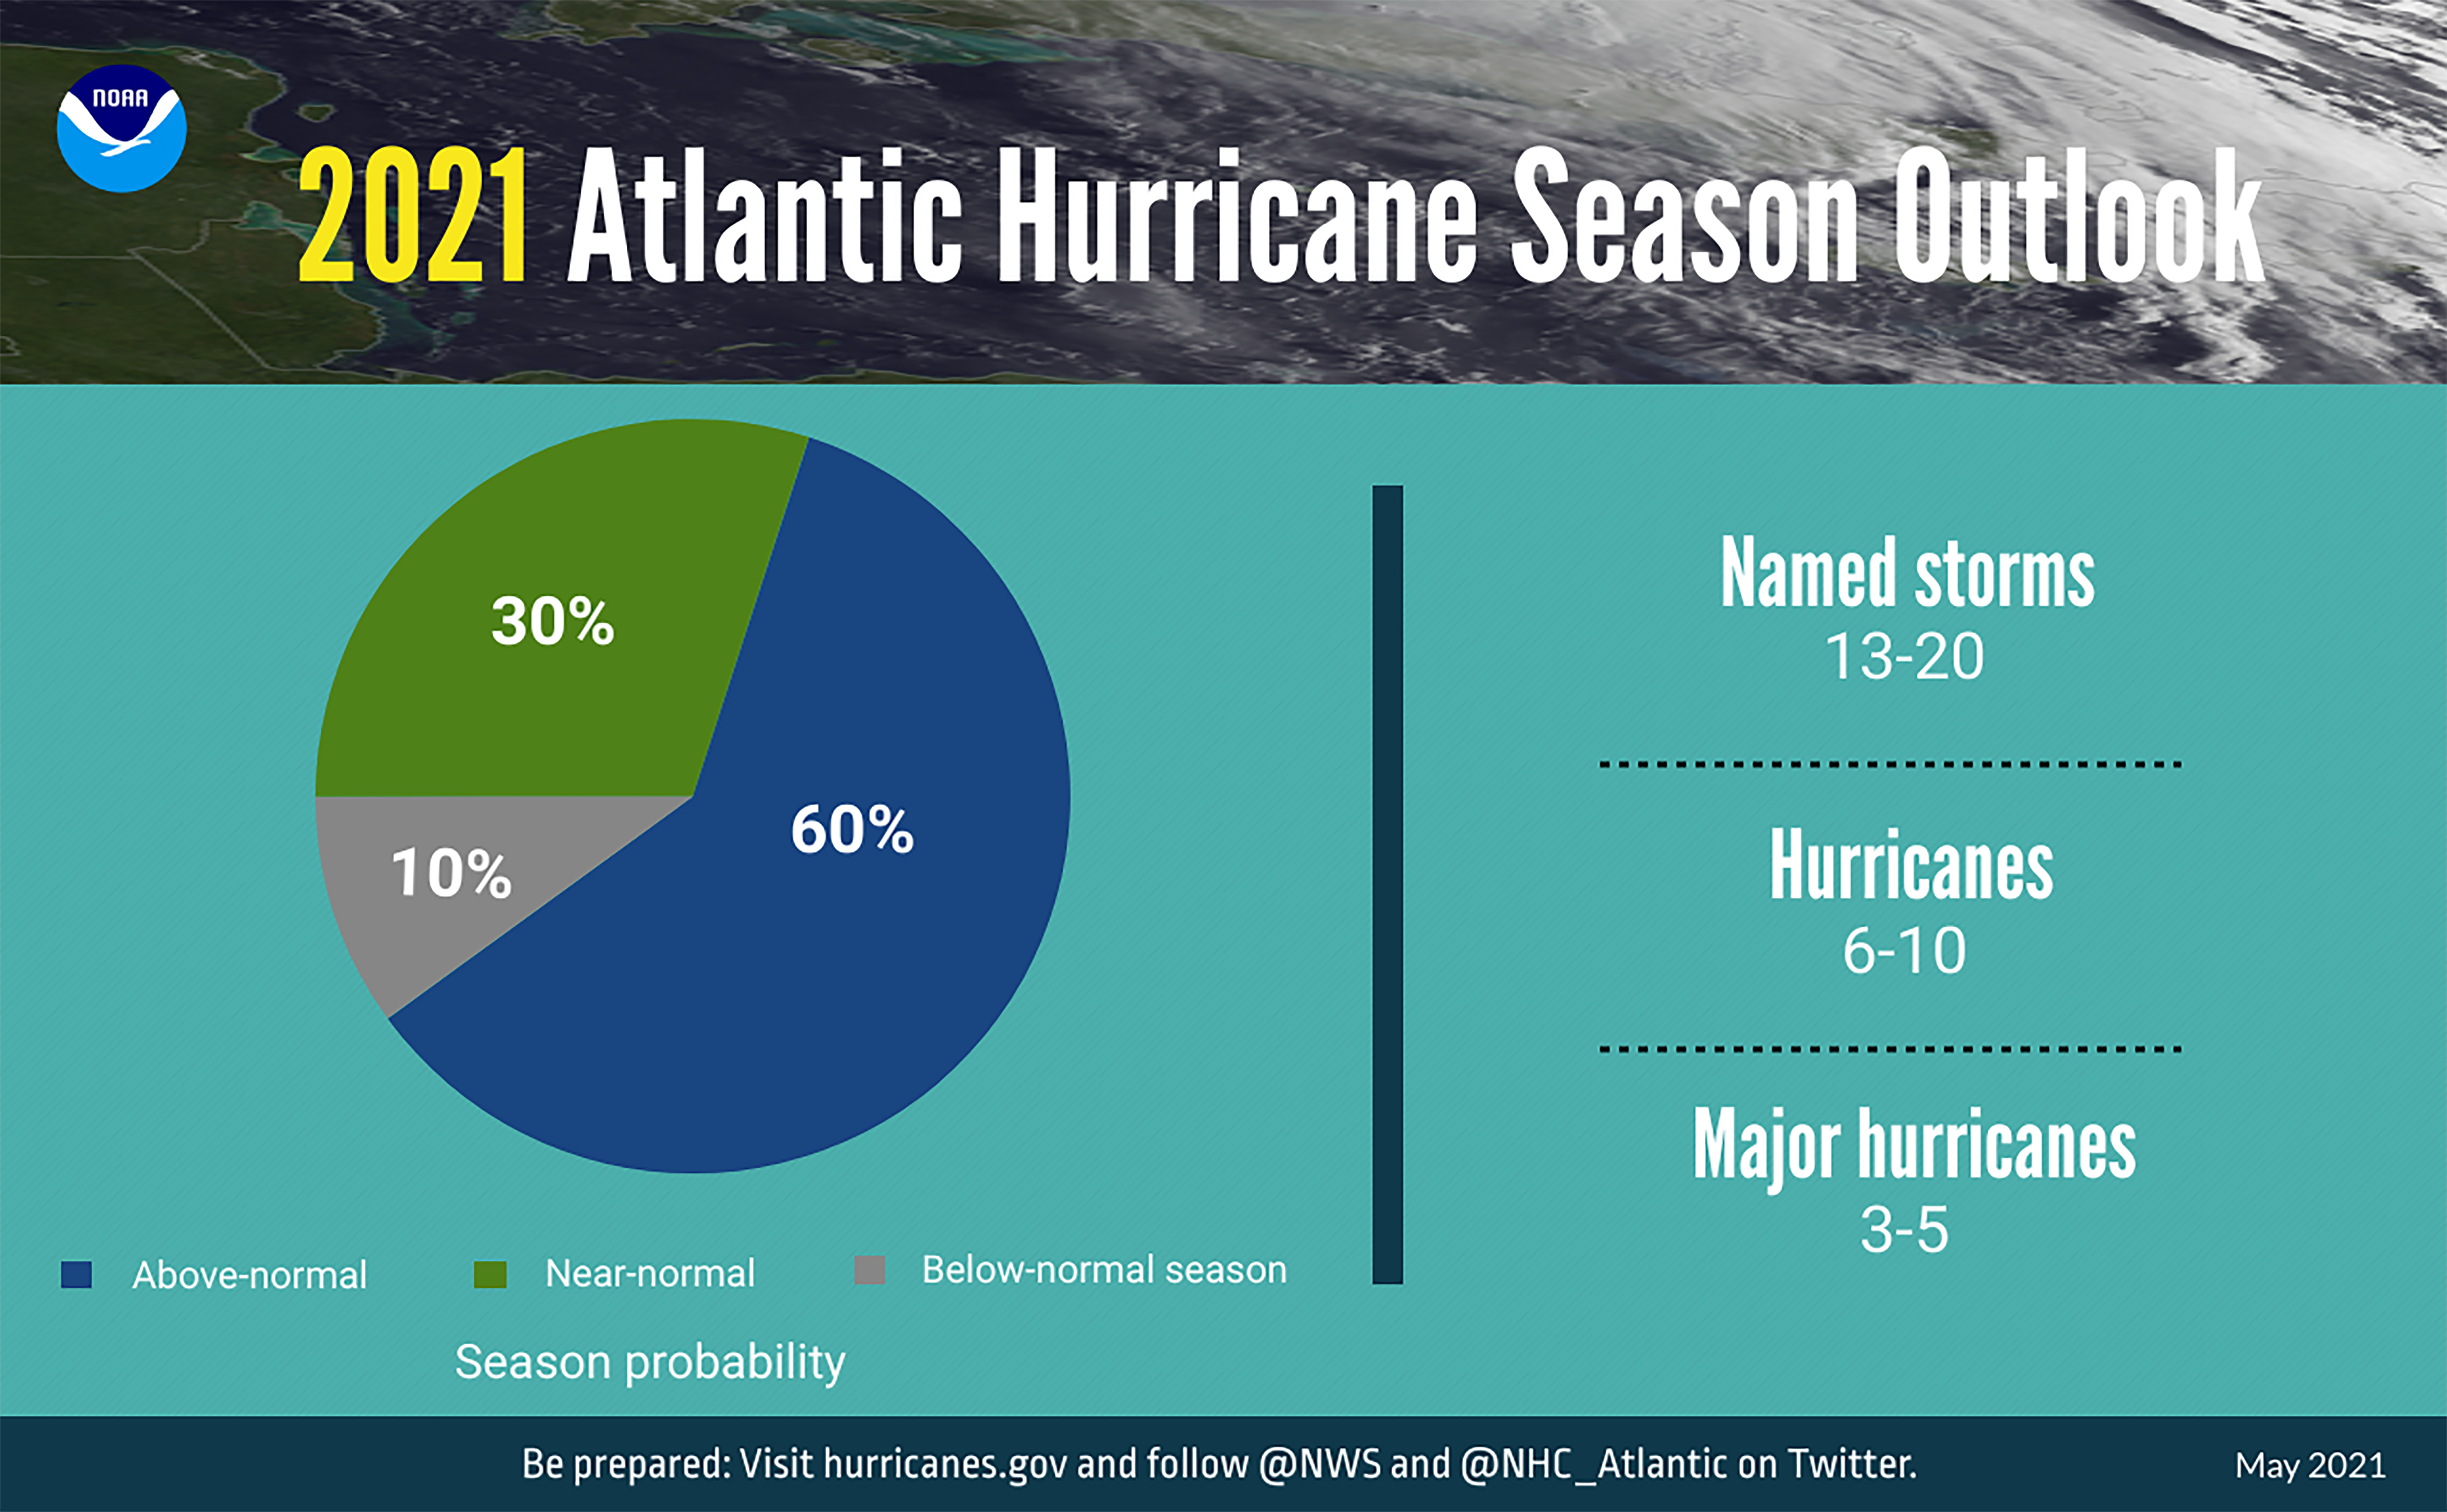 A summary infographic showing hurricane season probability and numbers of named storms predicted from NOAA's 2021 Atlantic Hurricane Season Outlook.